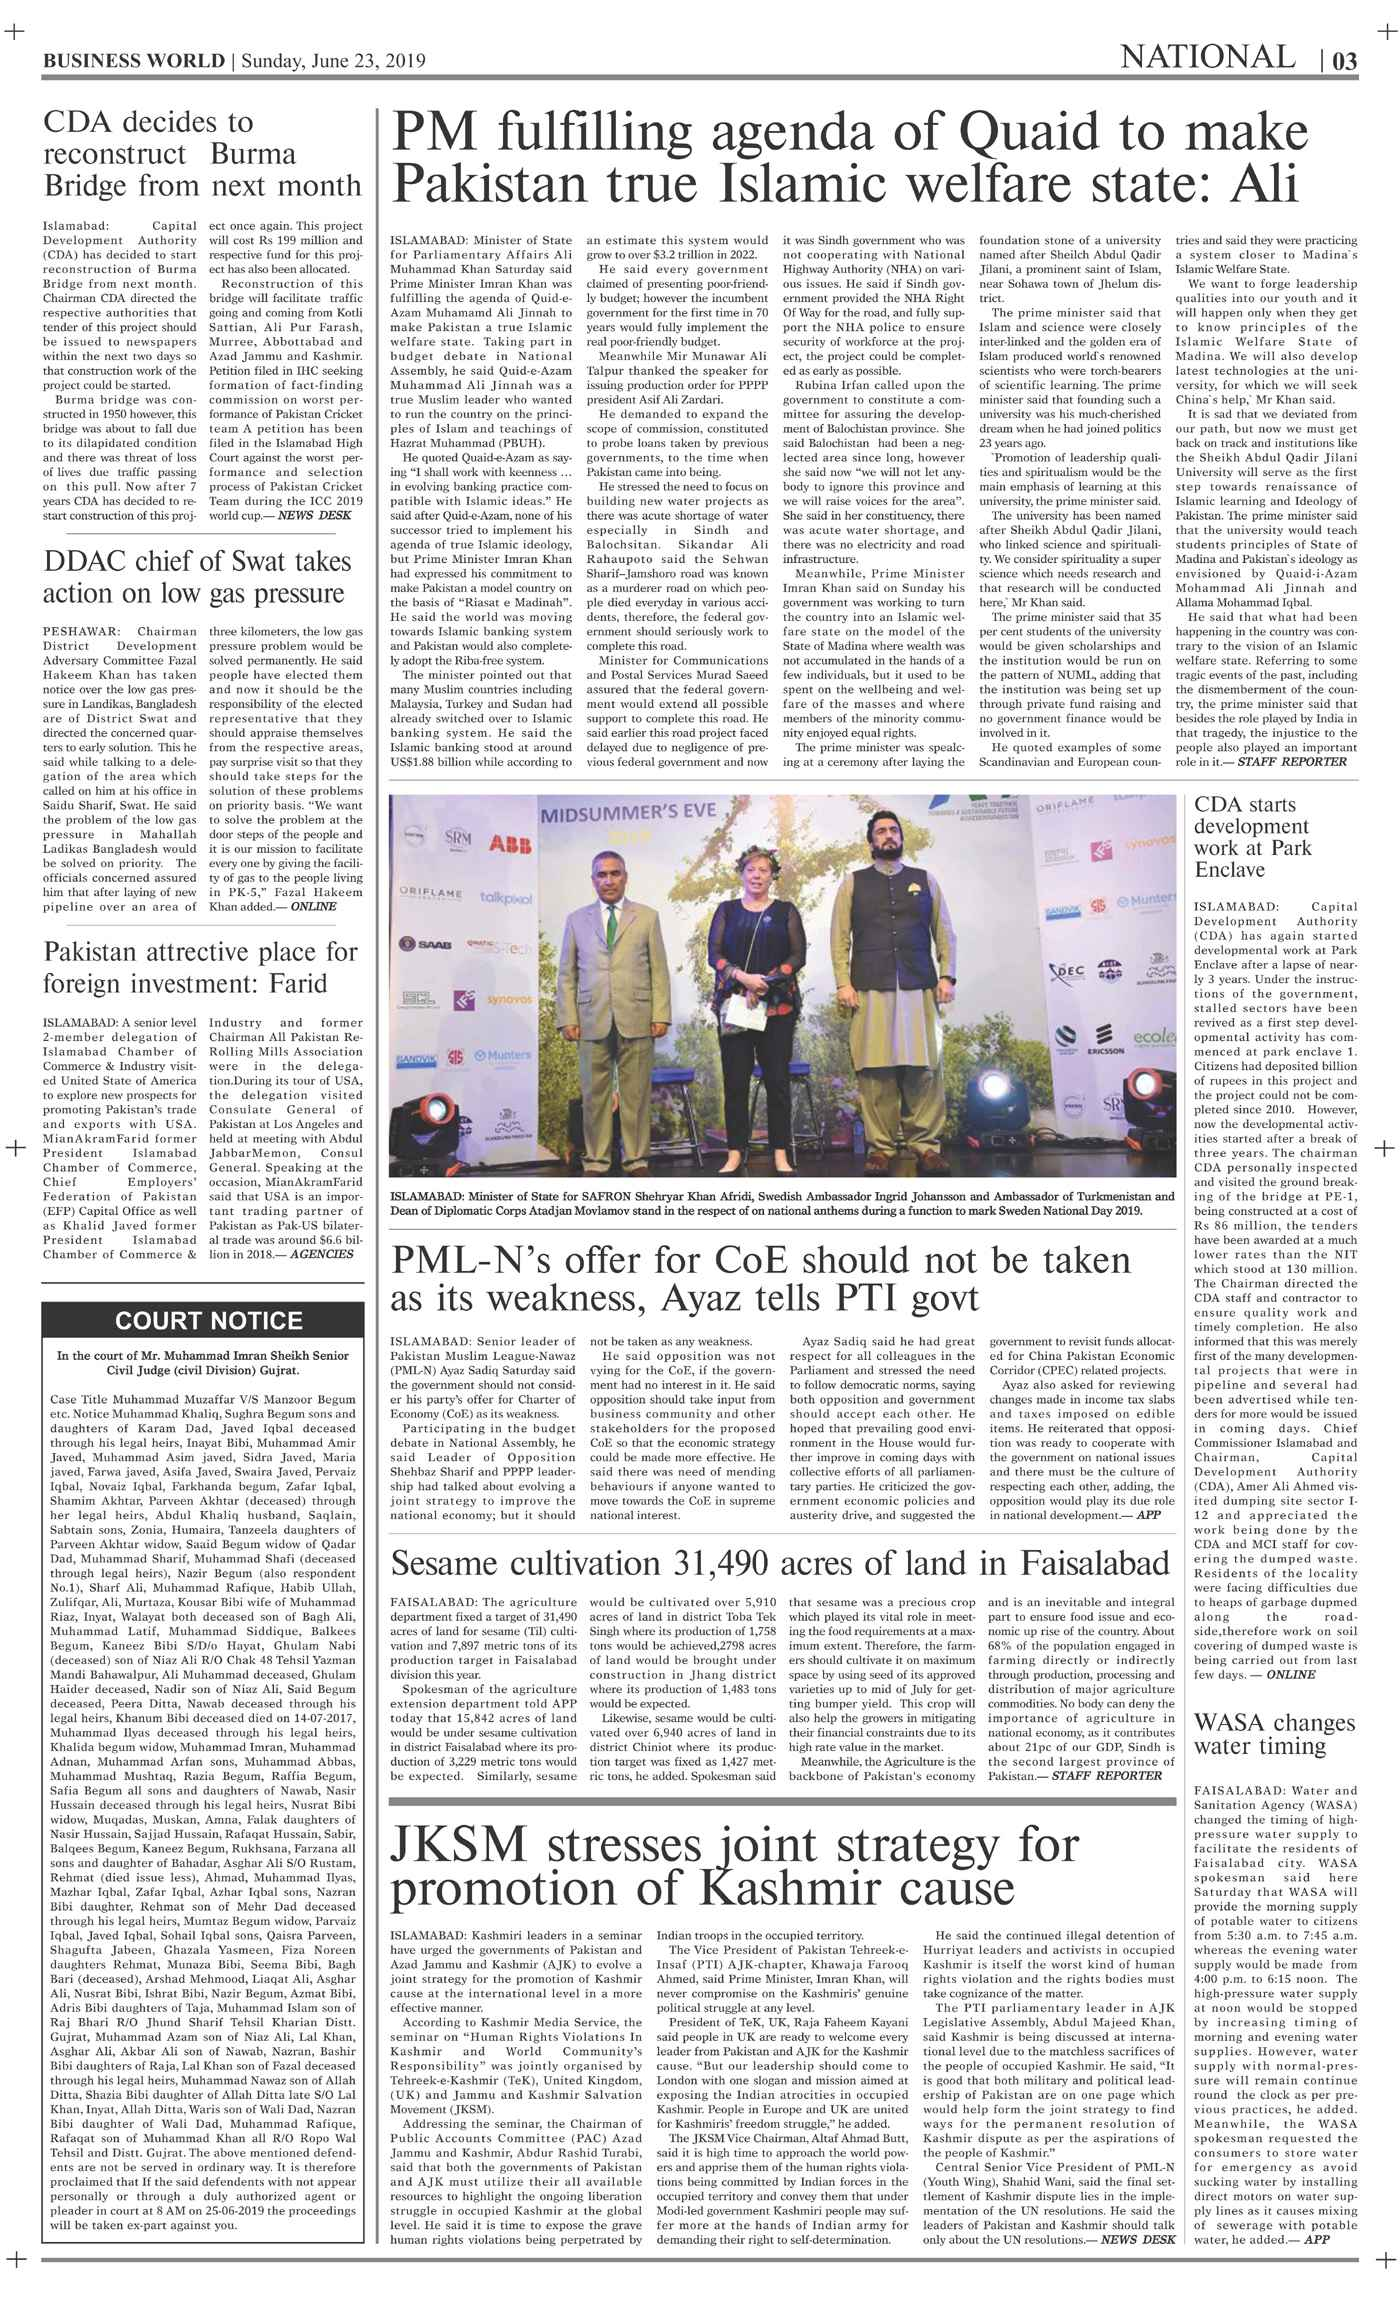 Daily Business World E-Paper 23rd June 2019 - Daily Business